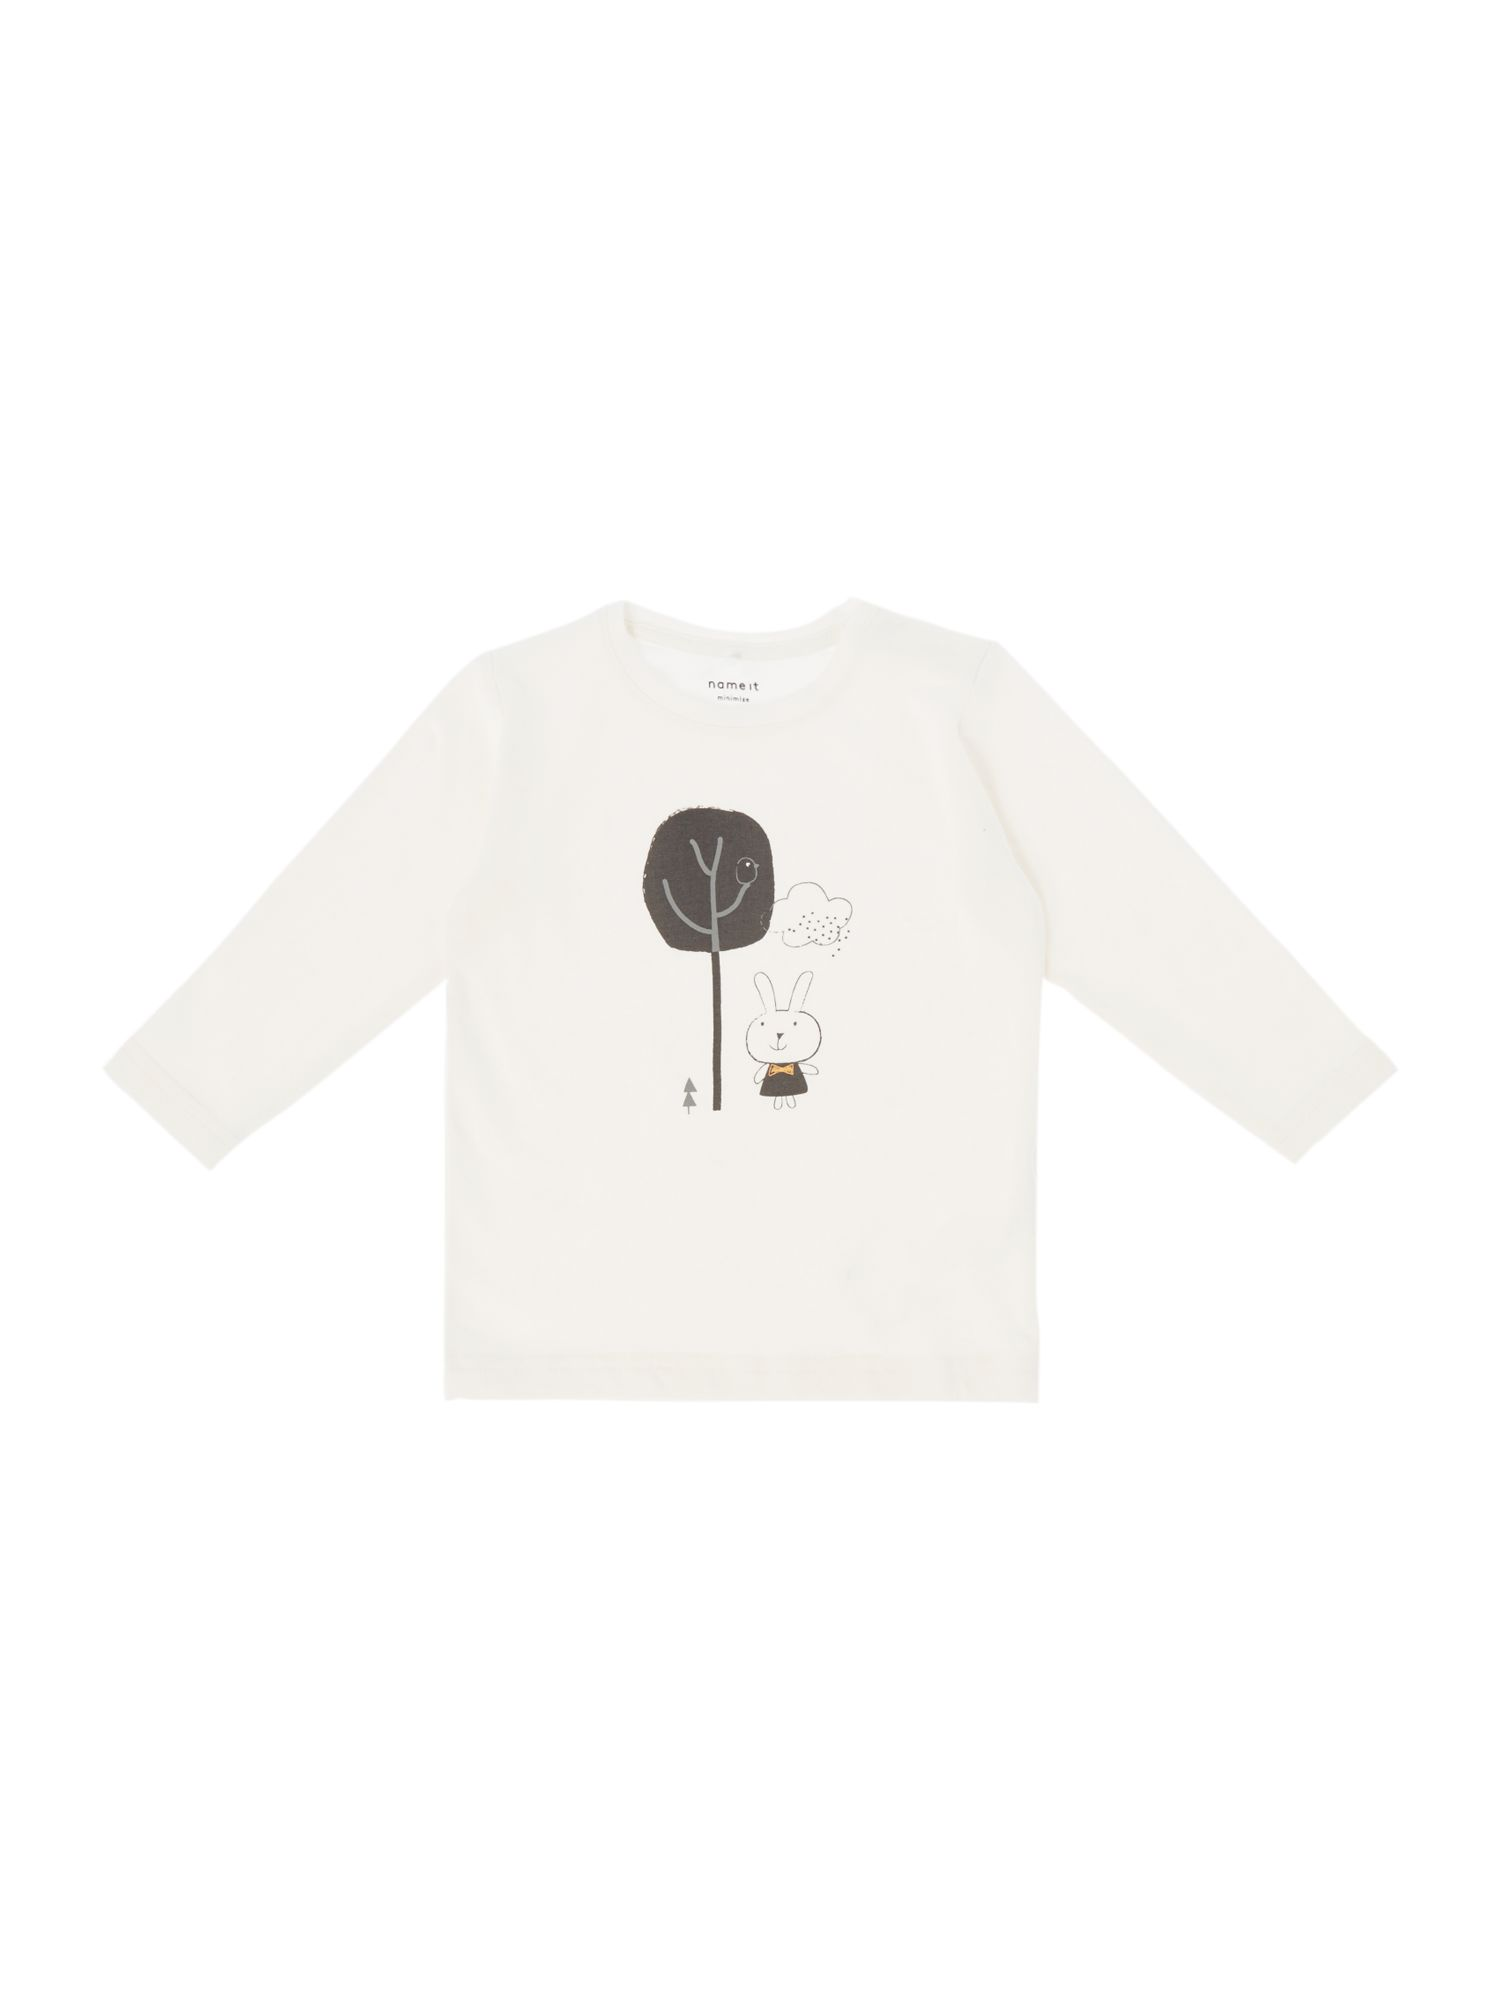 Name it name it Girls Graphic Bunny Long Sleeve T-Shirt, Cream